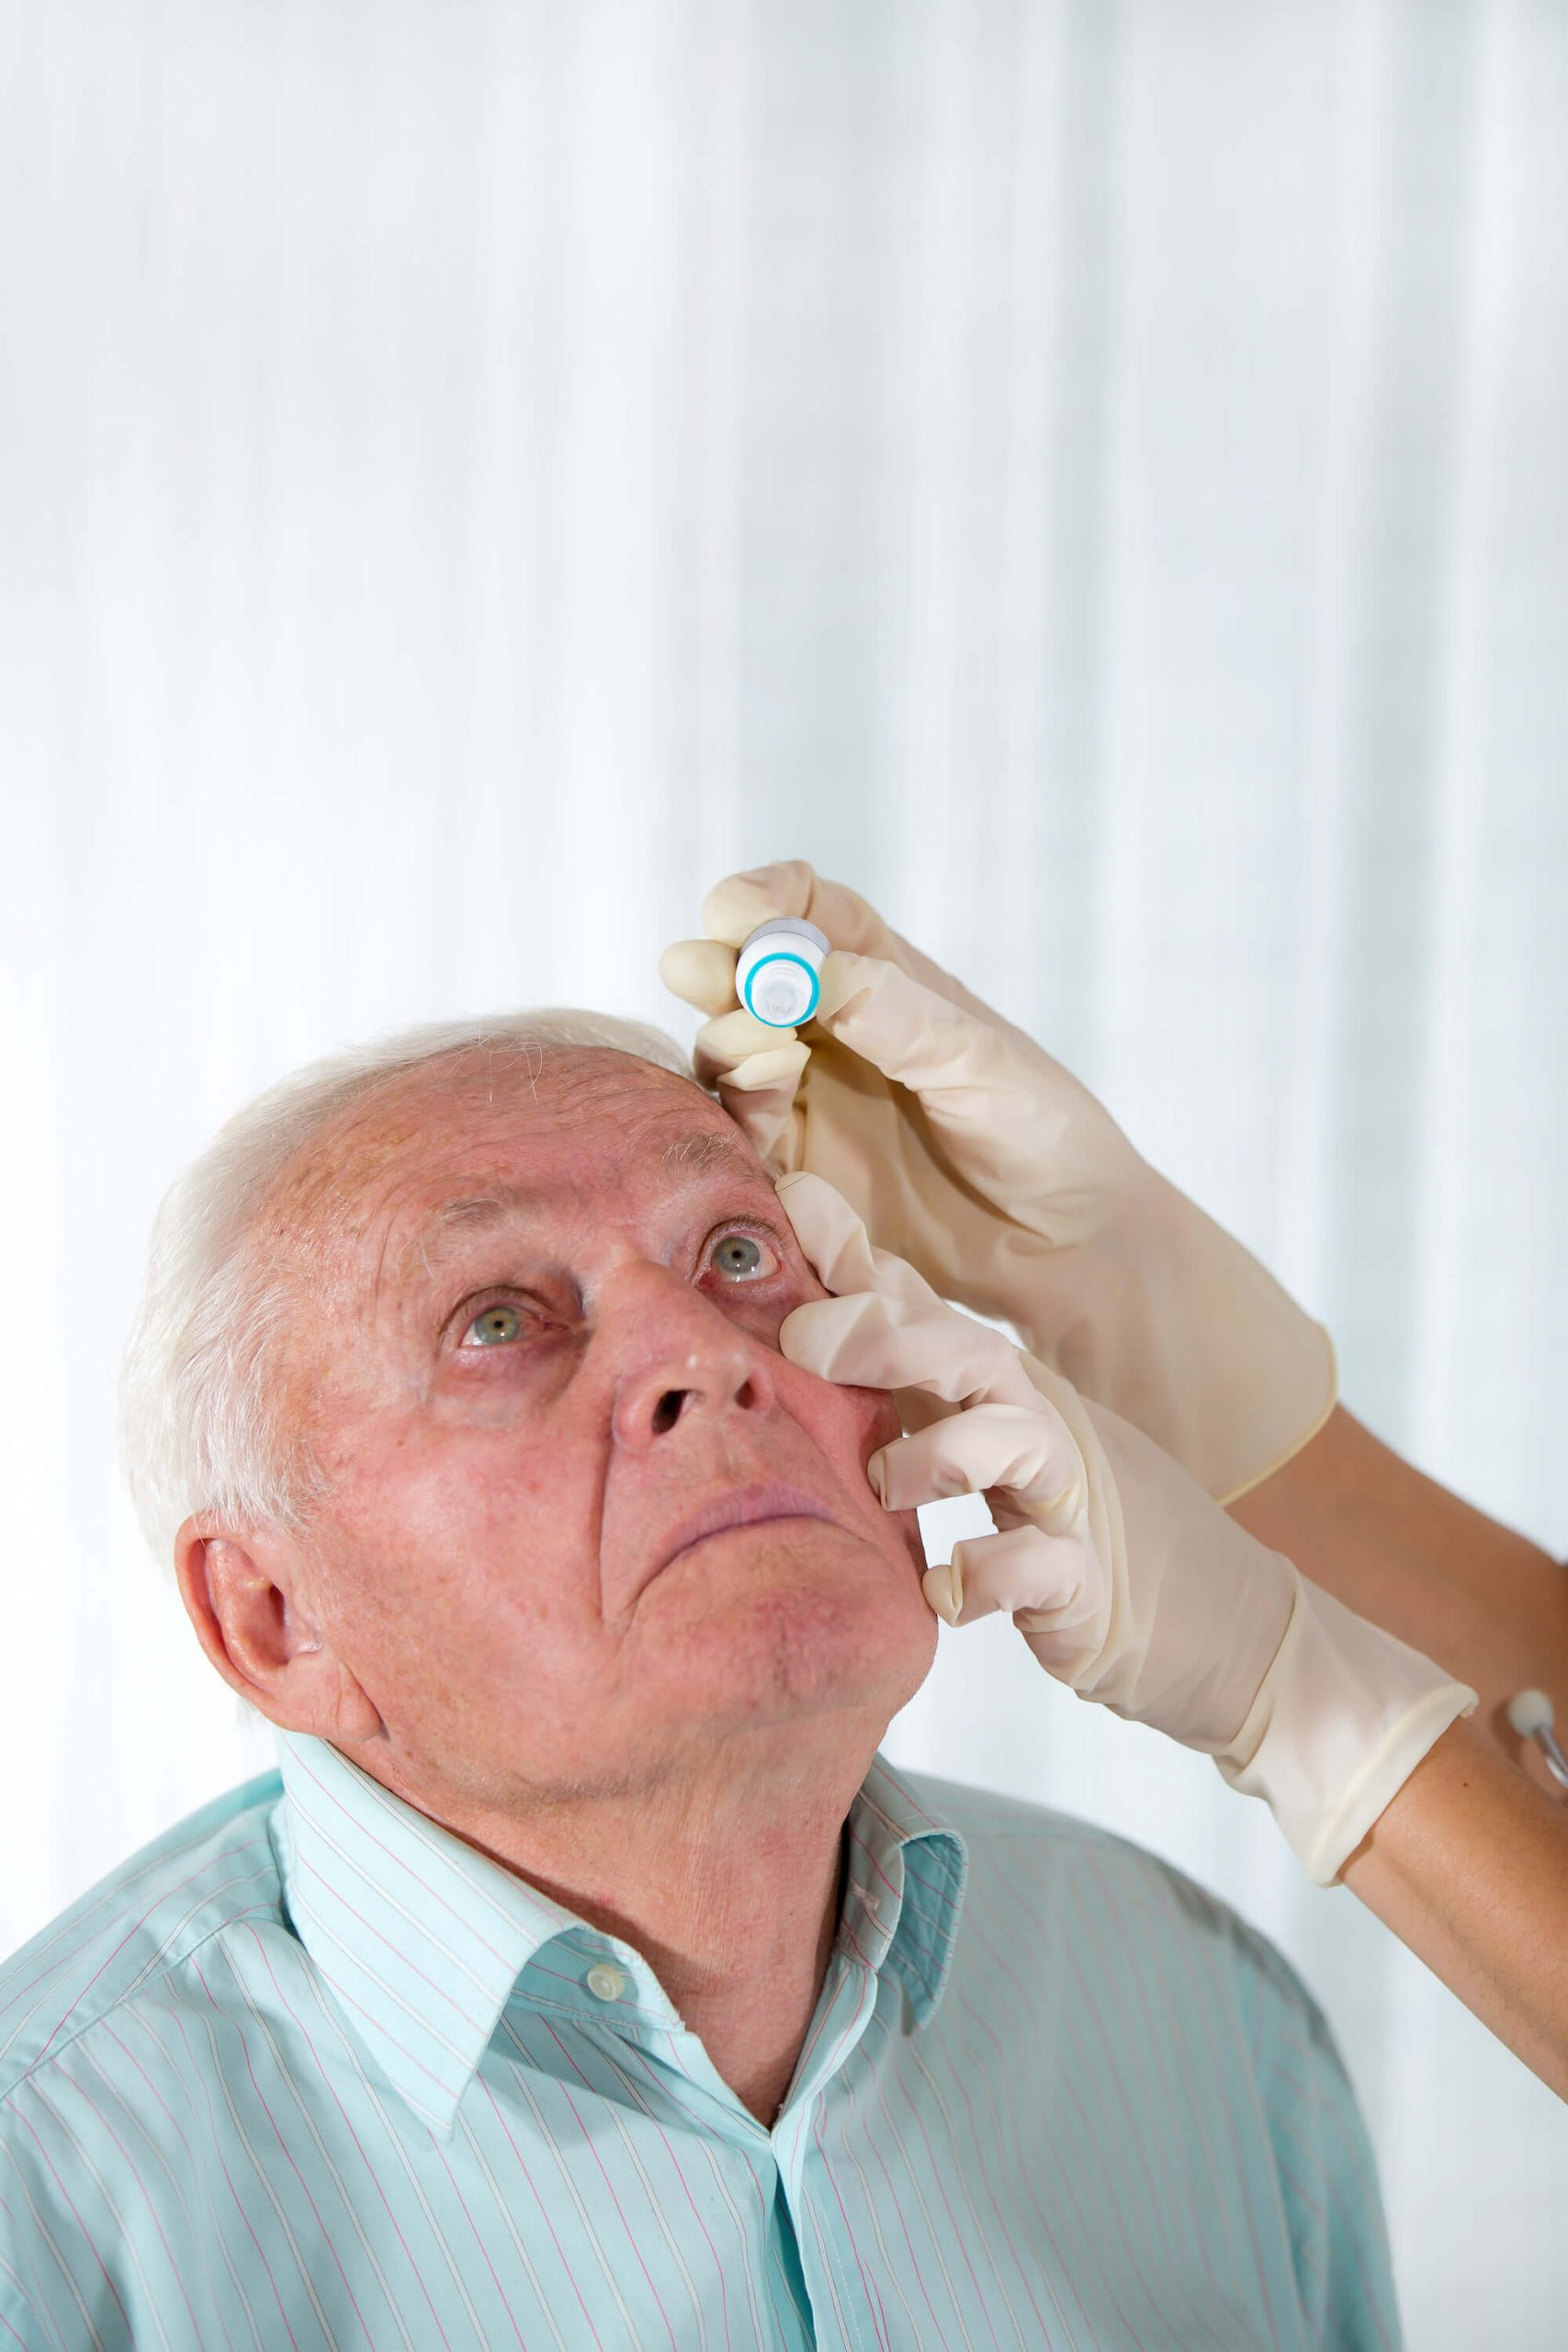 Elderly patient receiving eye drops from eye doctor